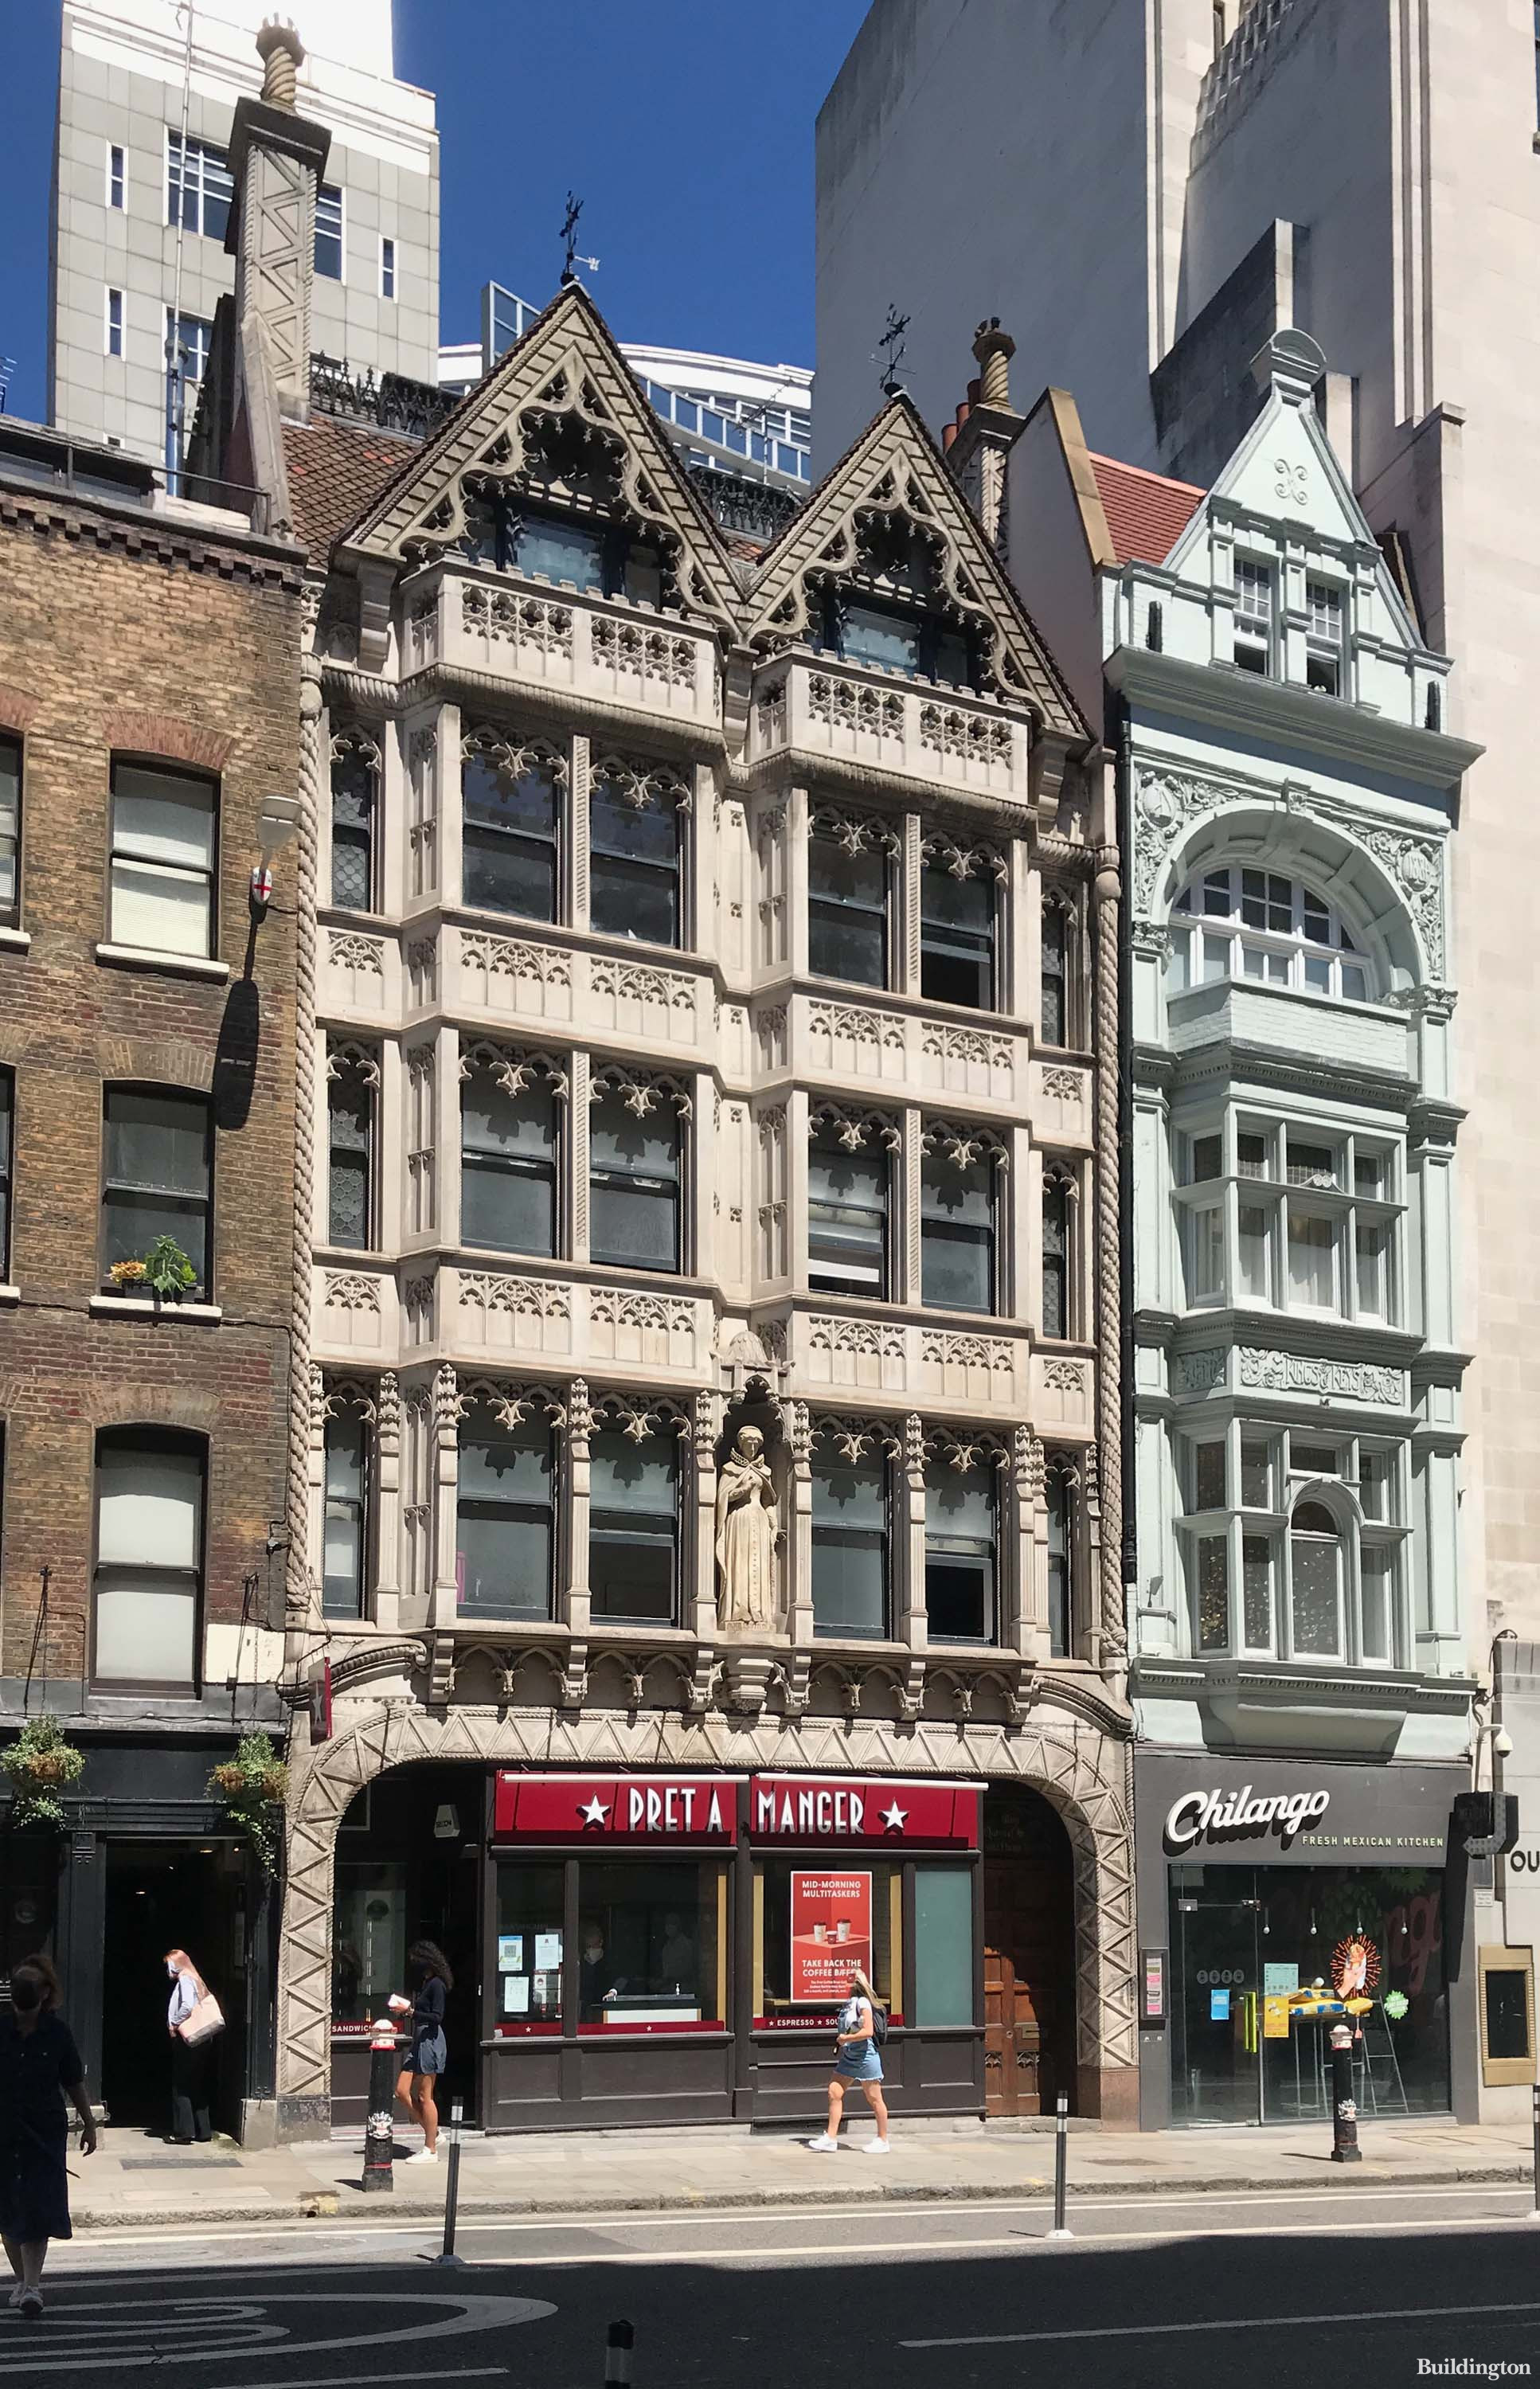 The Grade II listed Mary Queen of Scots House with Pret A Manger on the ground level at No. 143 Fleet Street in the City of London EC4.